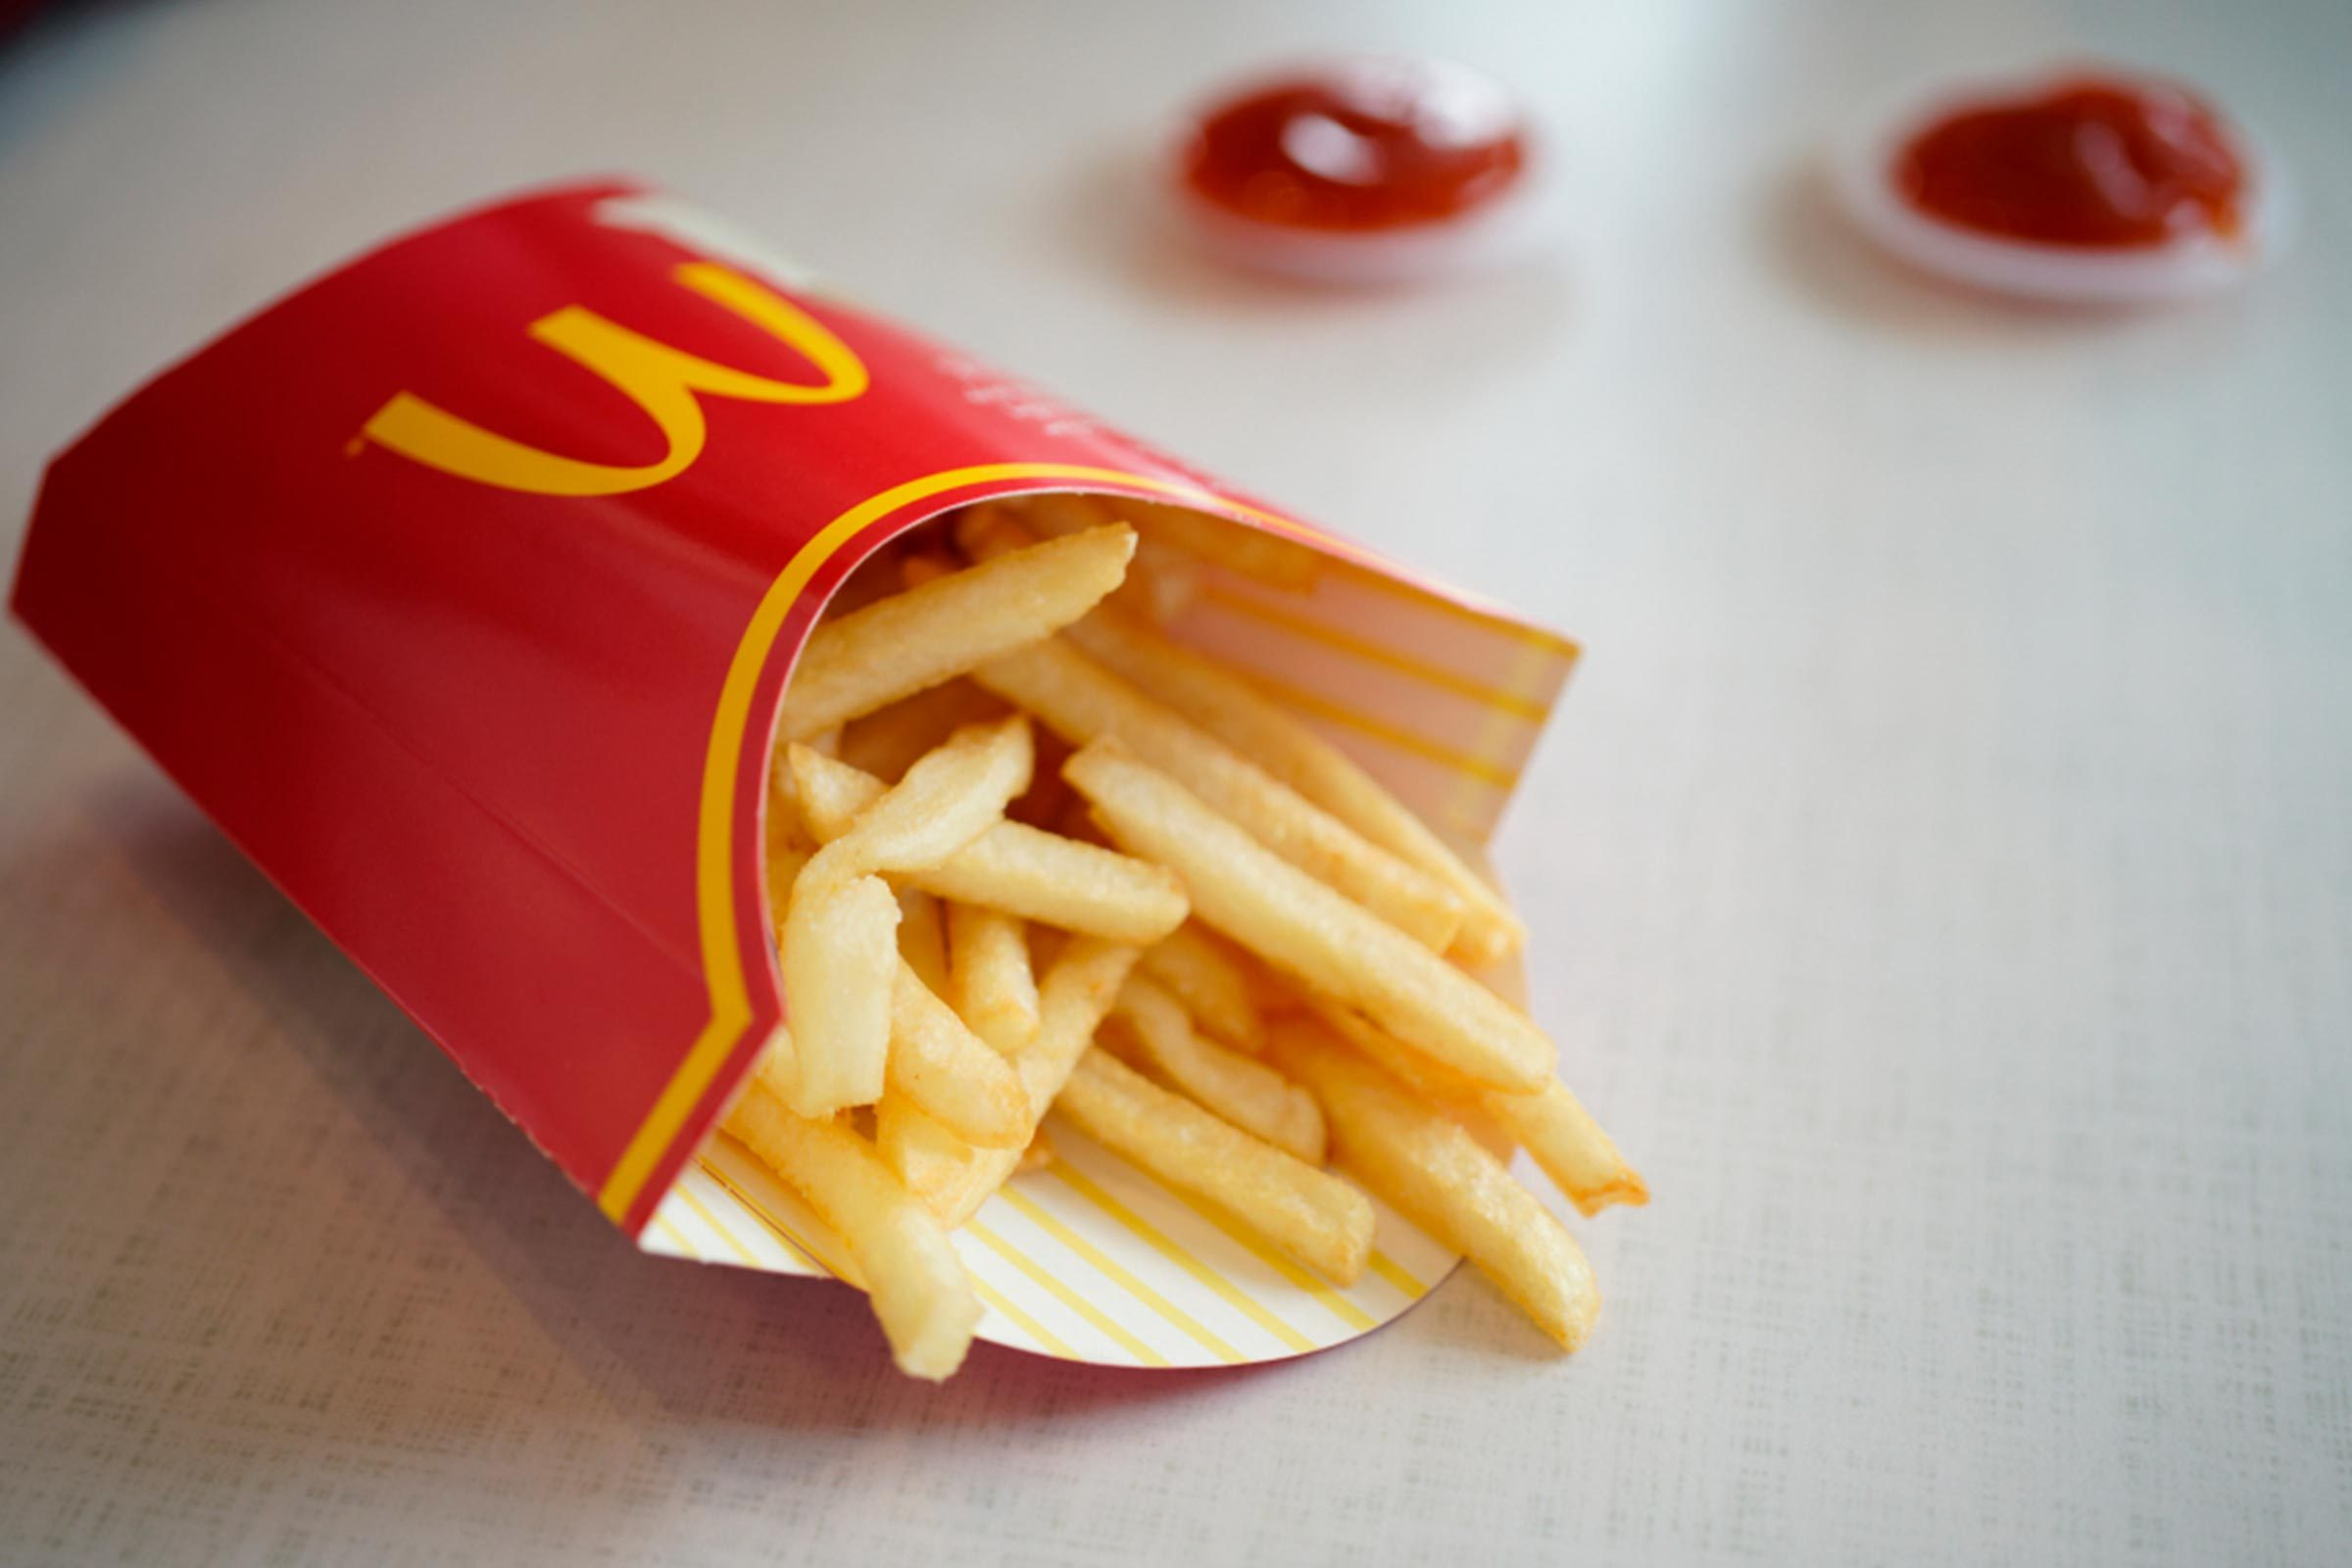 Fresh fries, fast food